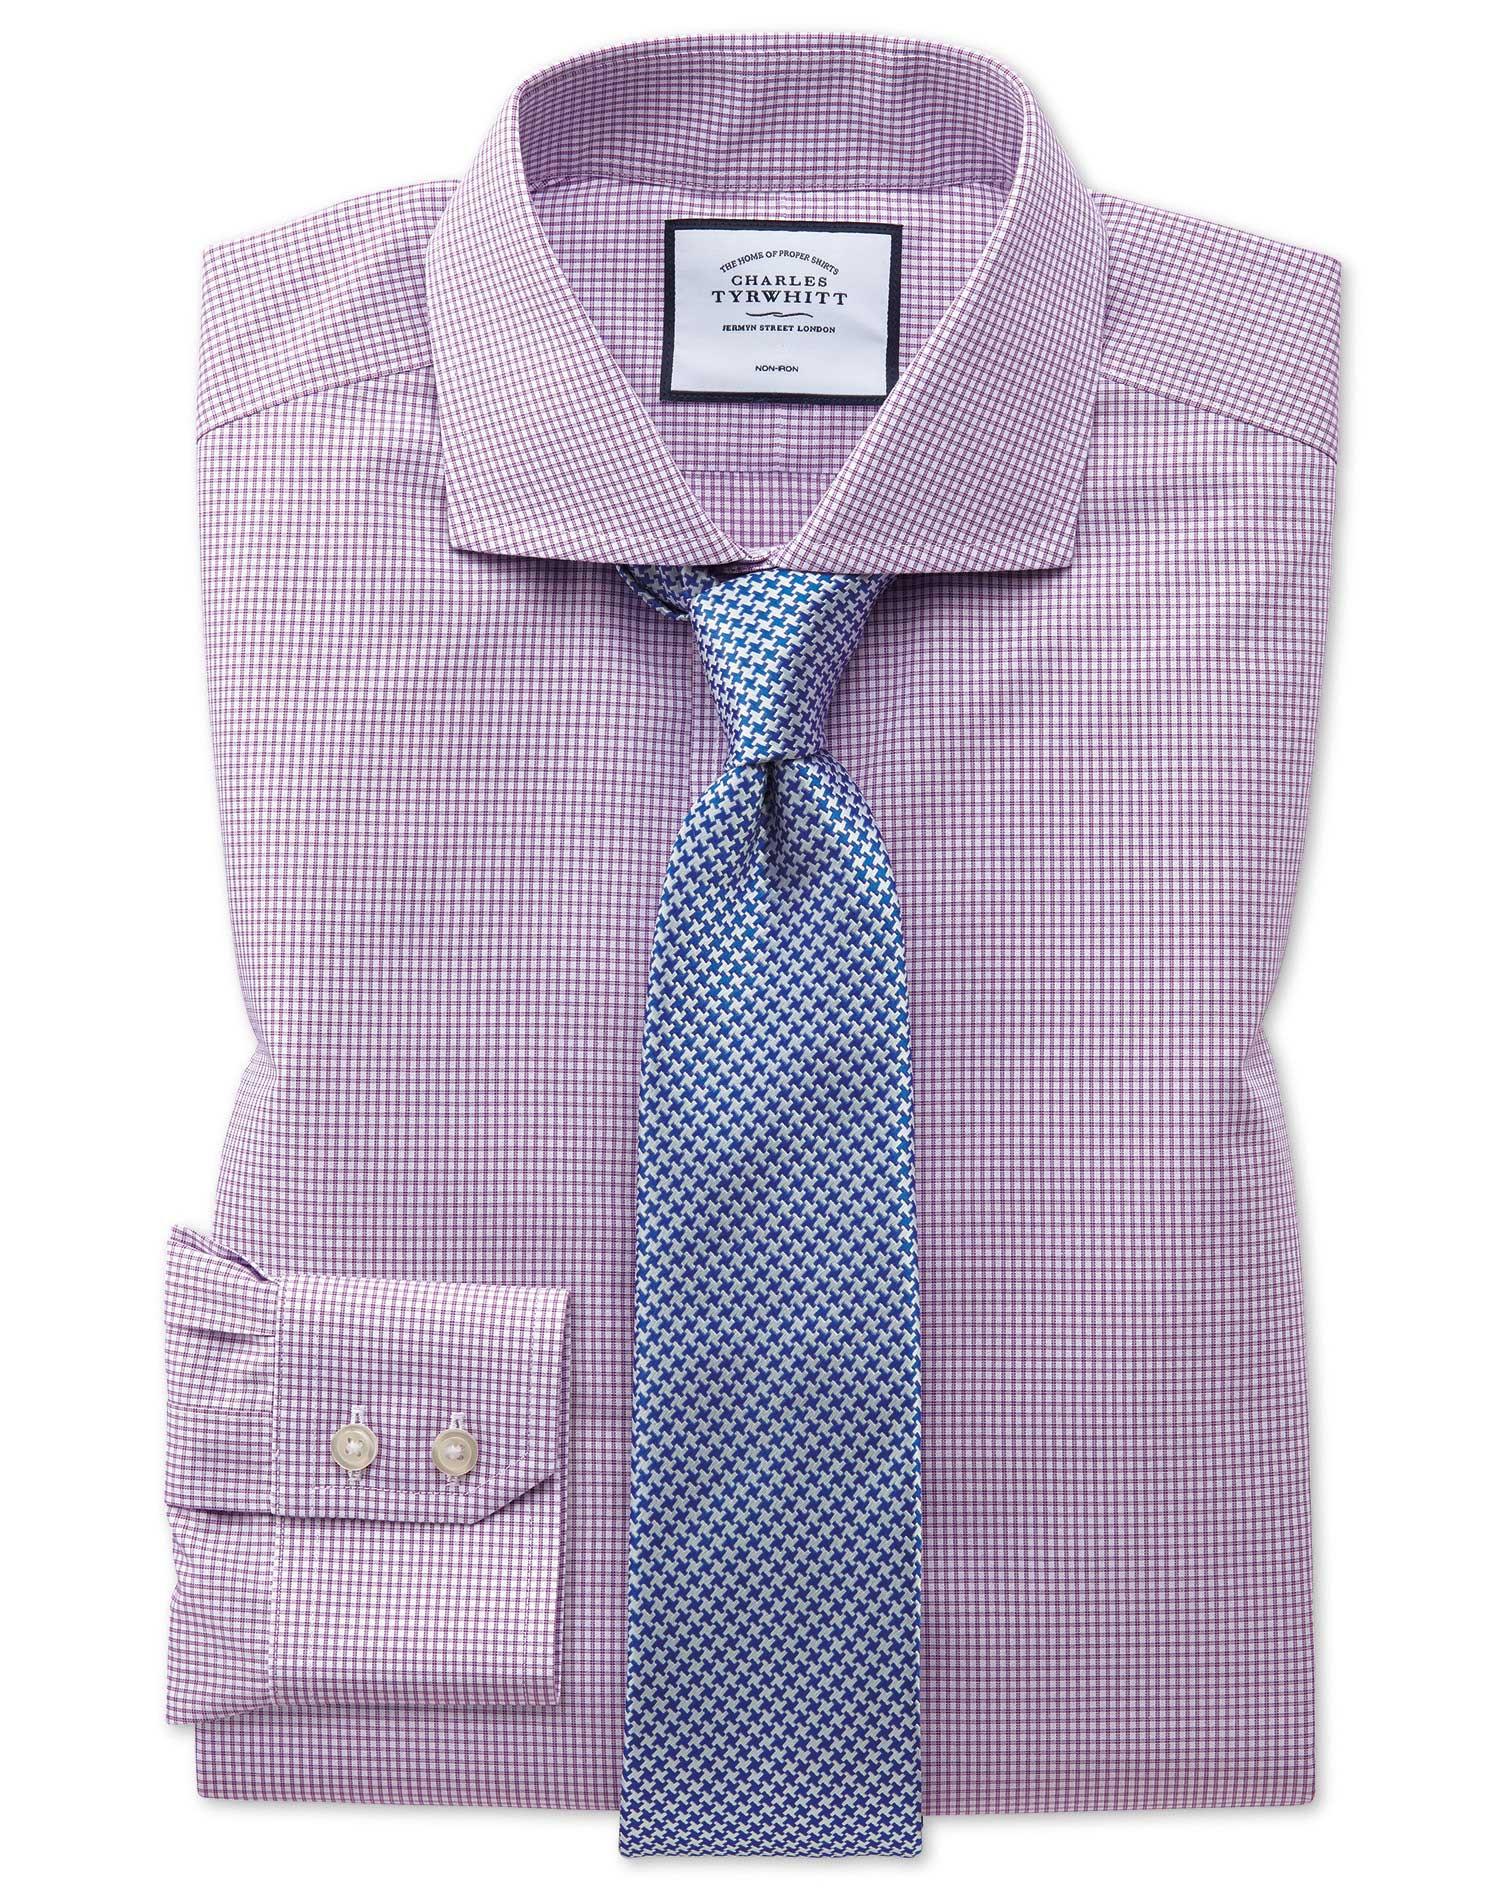 Extra Slim Fit Non-Iron Natural Cool Pink Check Cotton Formal Shirt Single Cuff Size 16.5/34 by Char